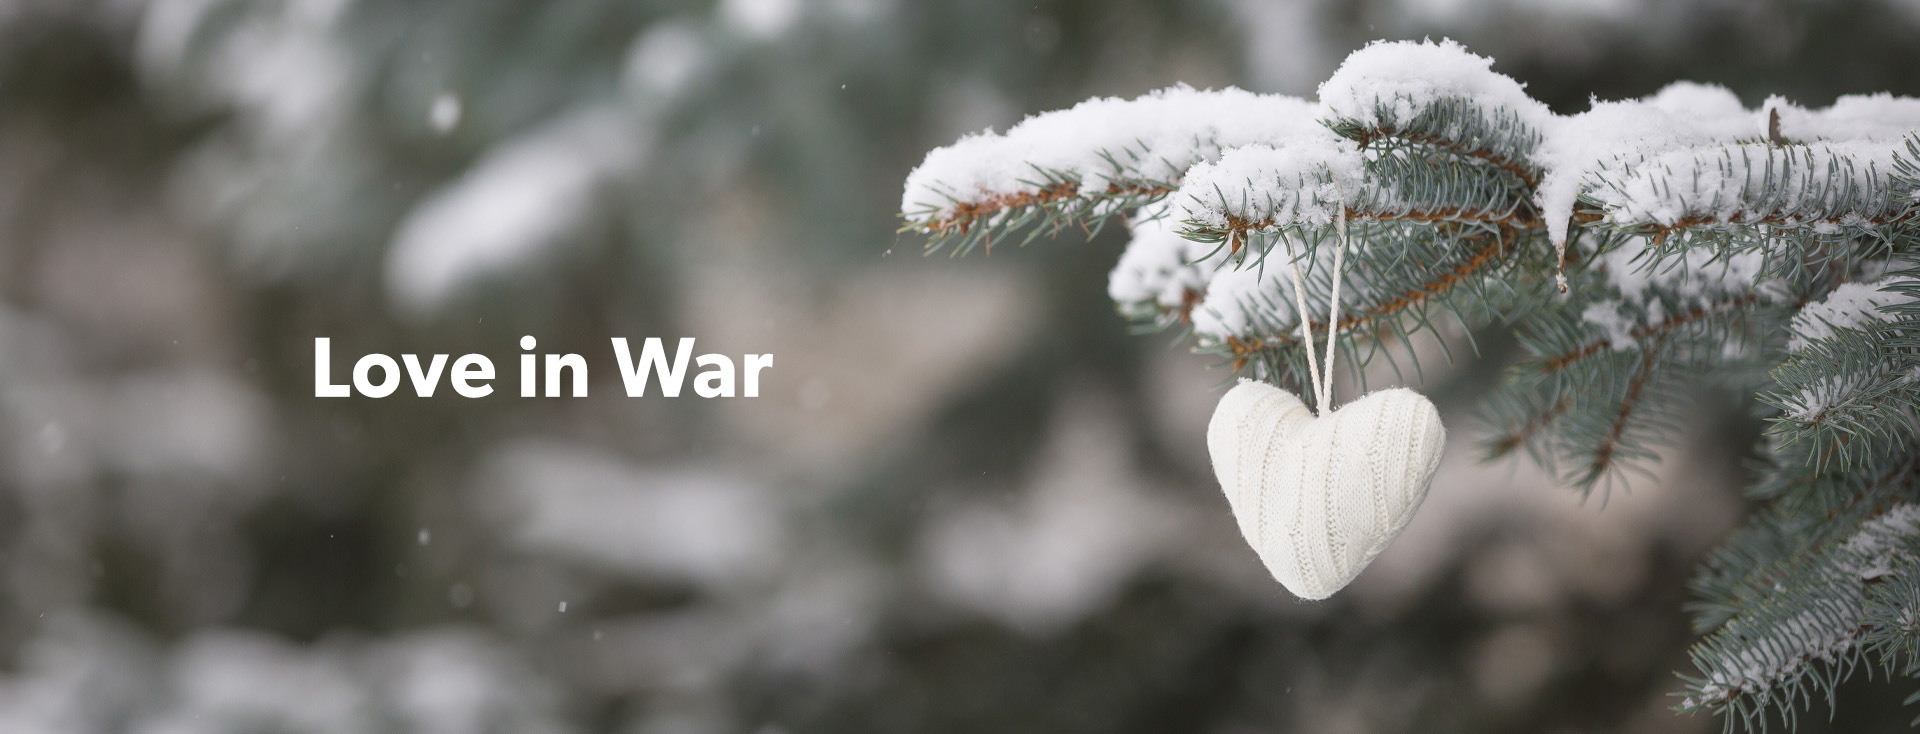 Love in War The Christmas Truce of WWI